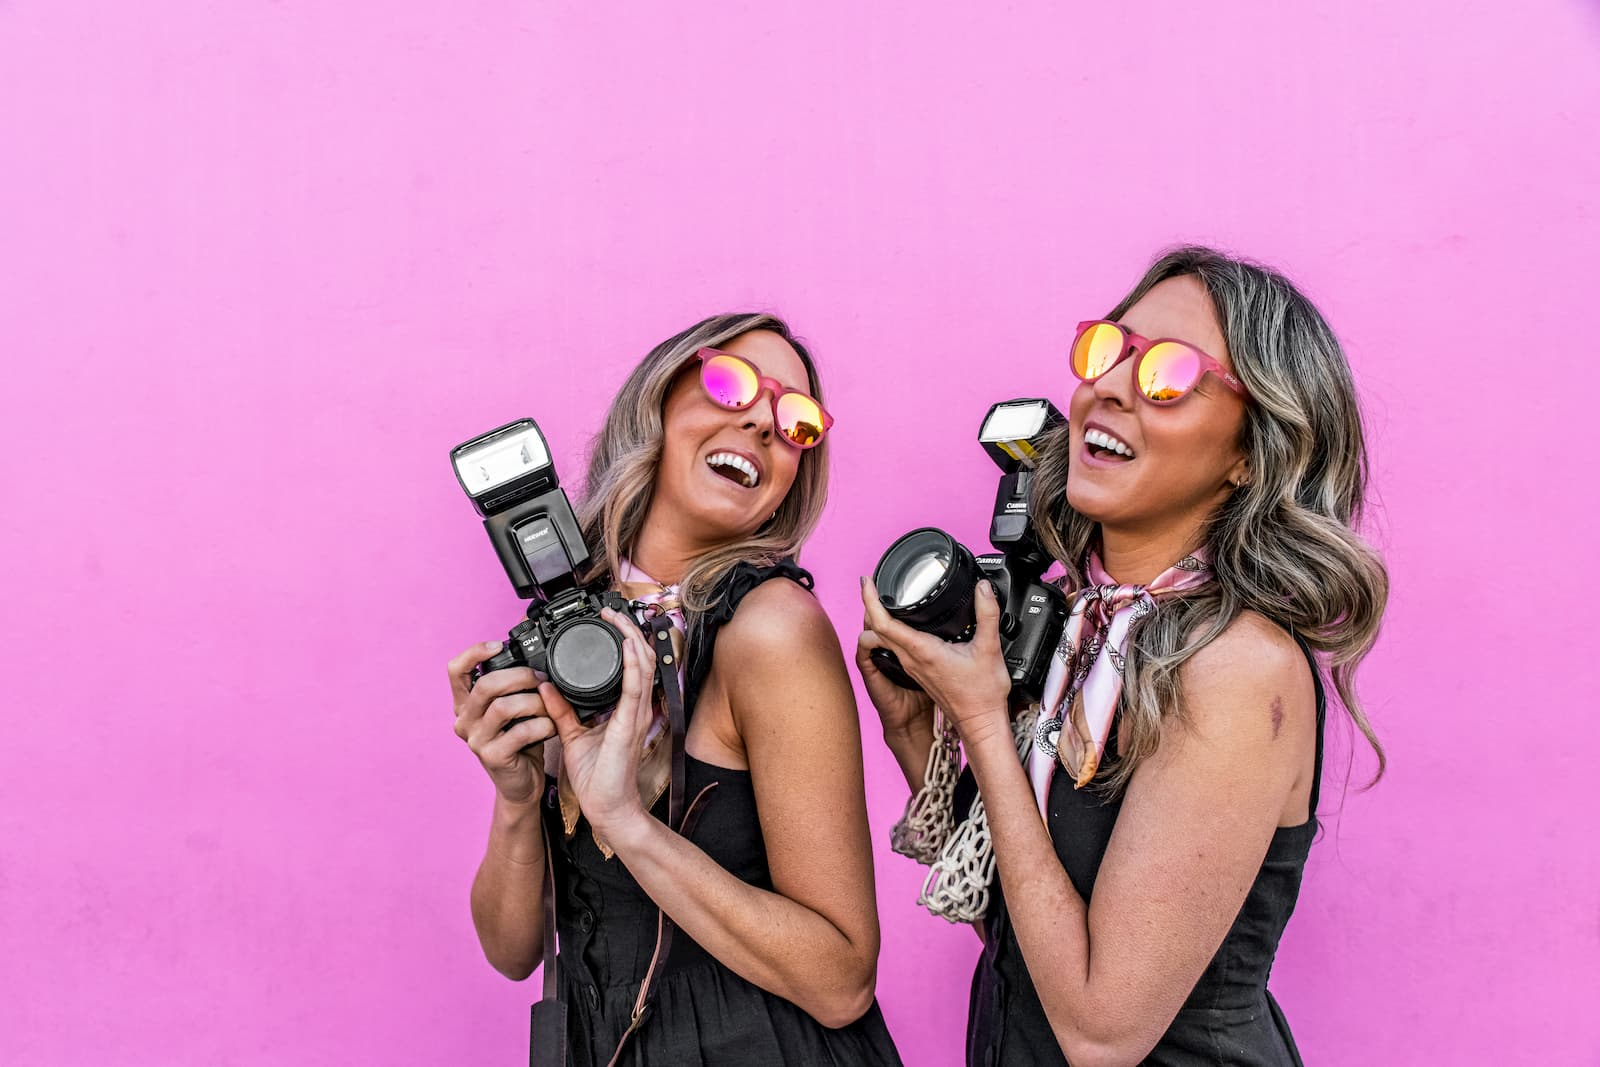 round pink mirrored sunglasses on photographer girls